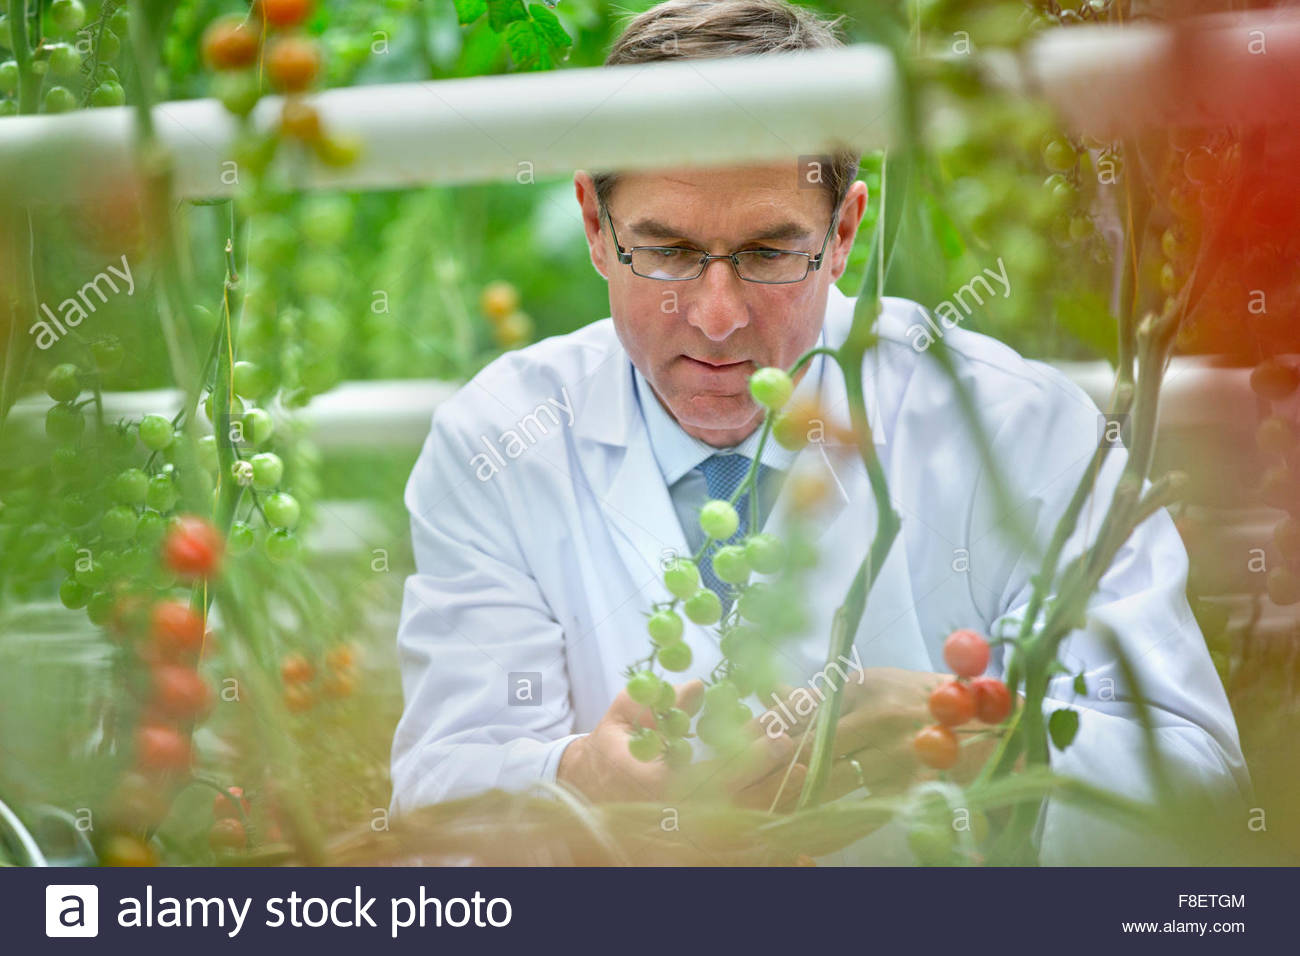 Food scientist examining tomatoes ripening on vine - Stock Image